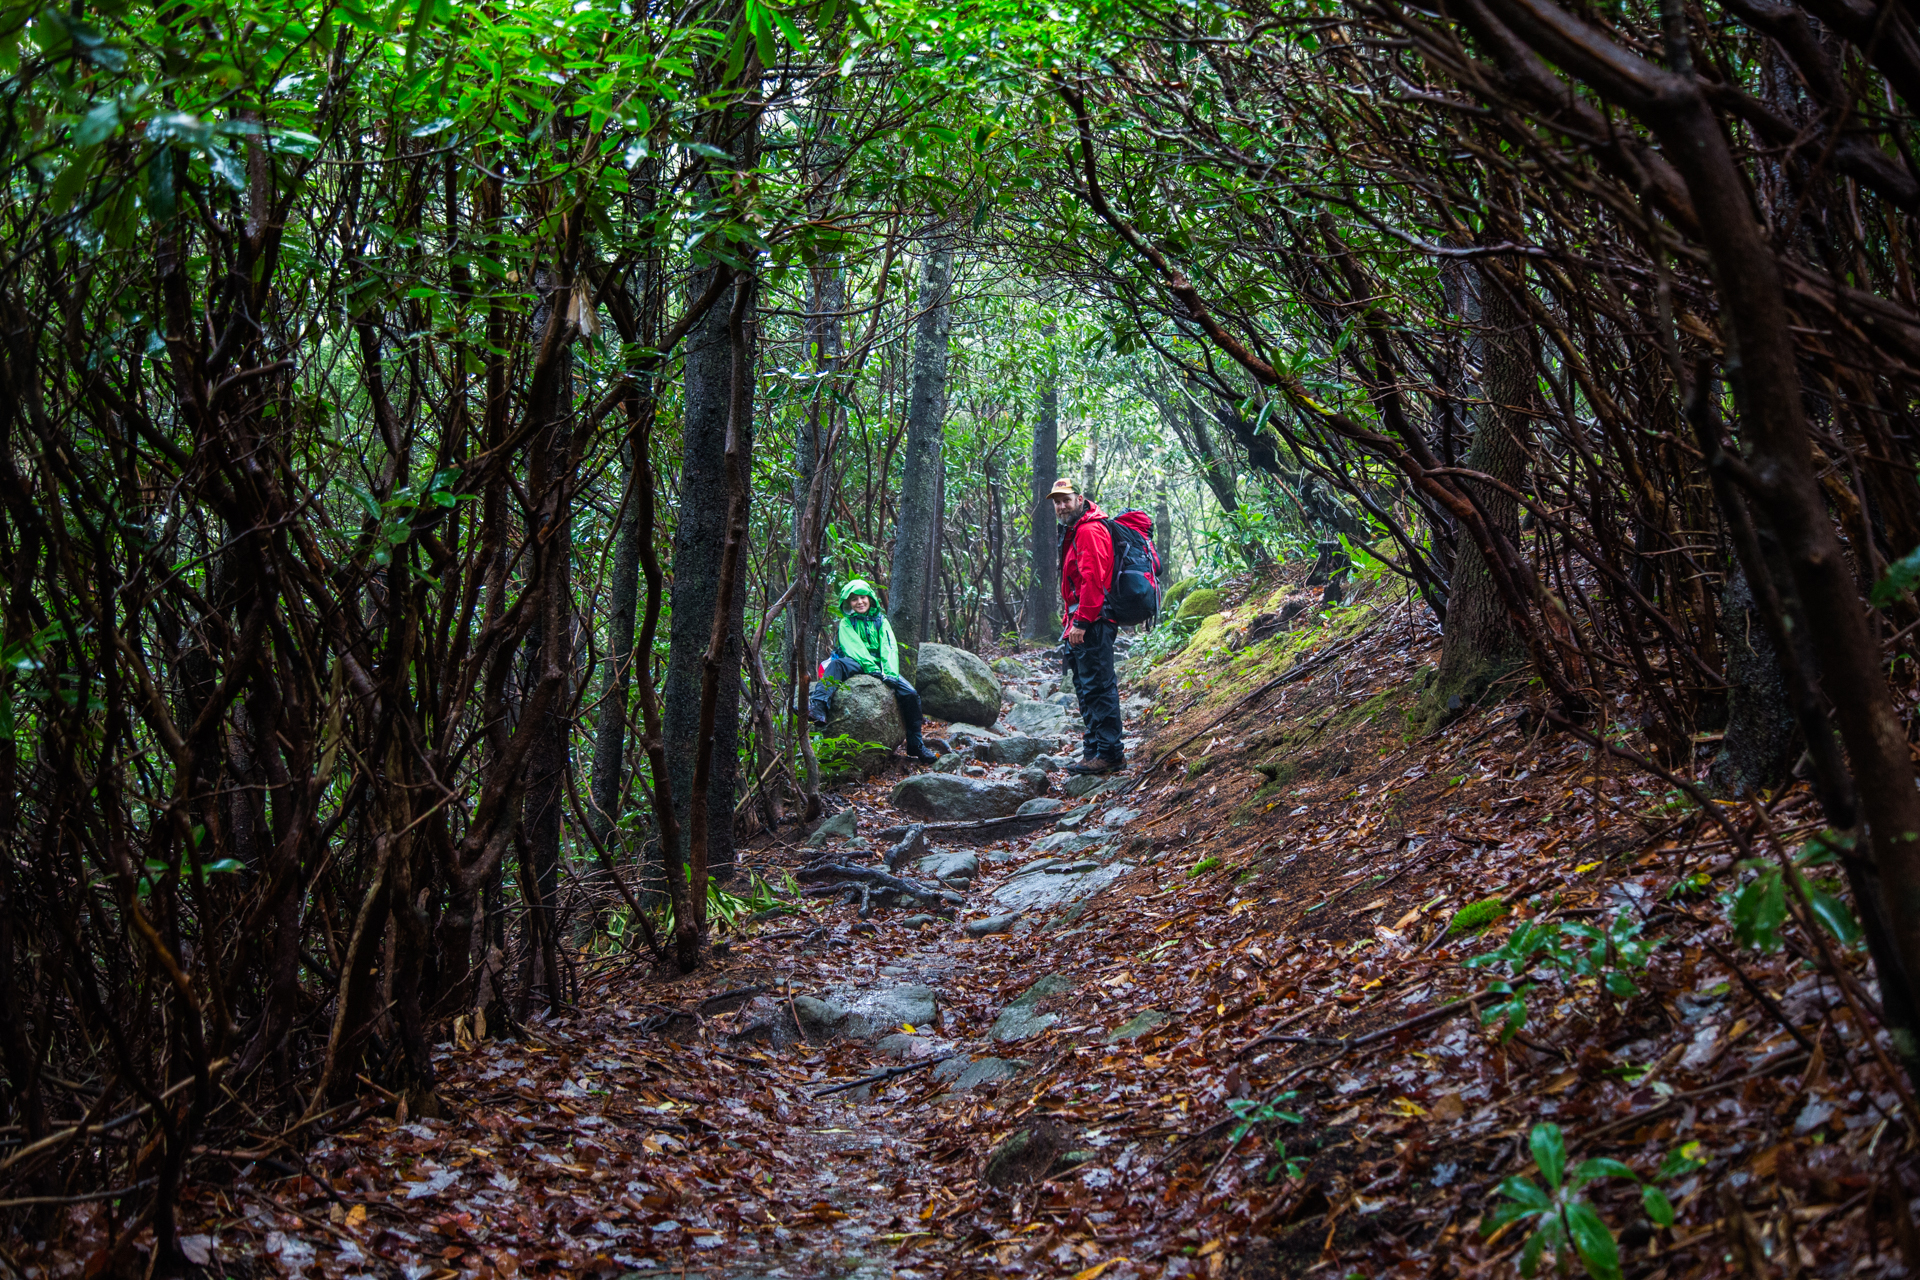 Man and child with hiking gear on path through rhododendron tunnels.